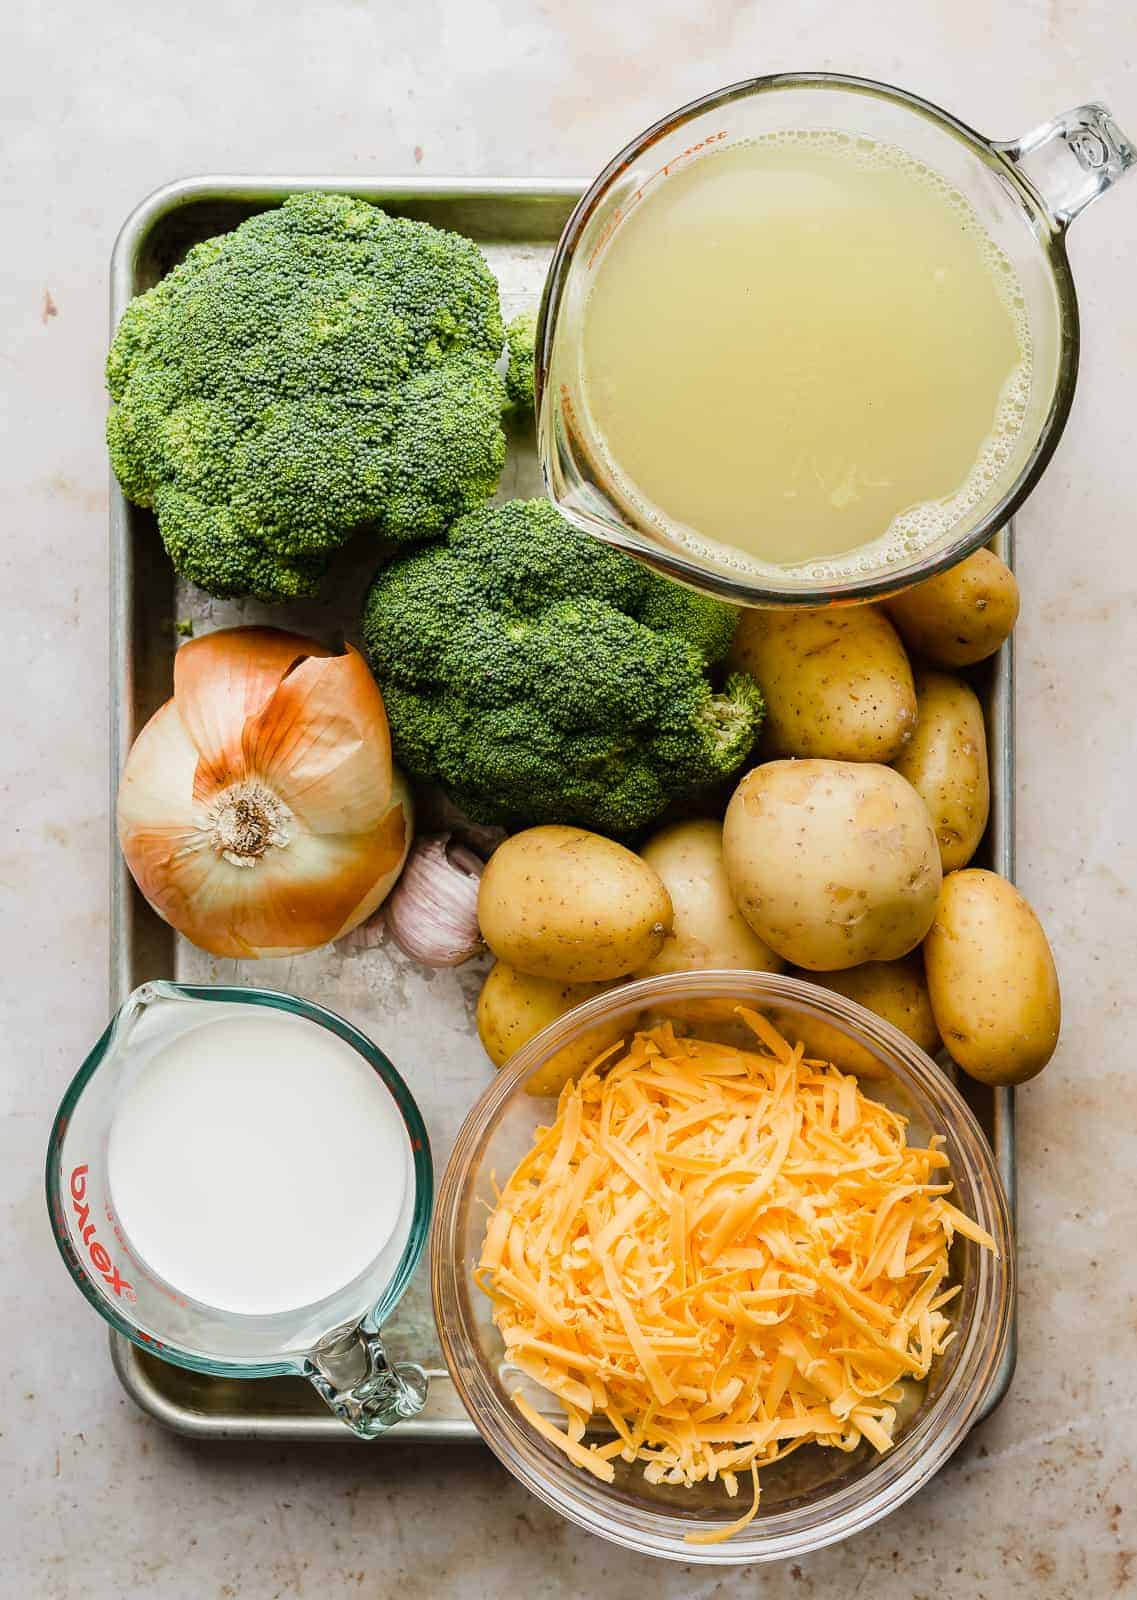 A baking sheet full of ingredients used to make Broccoli Potato Soup: cream, cheese, potatoes, chicken broth, broccoli.